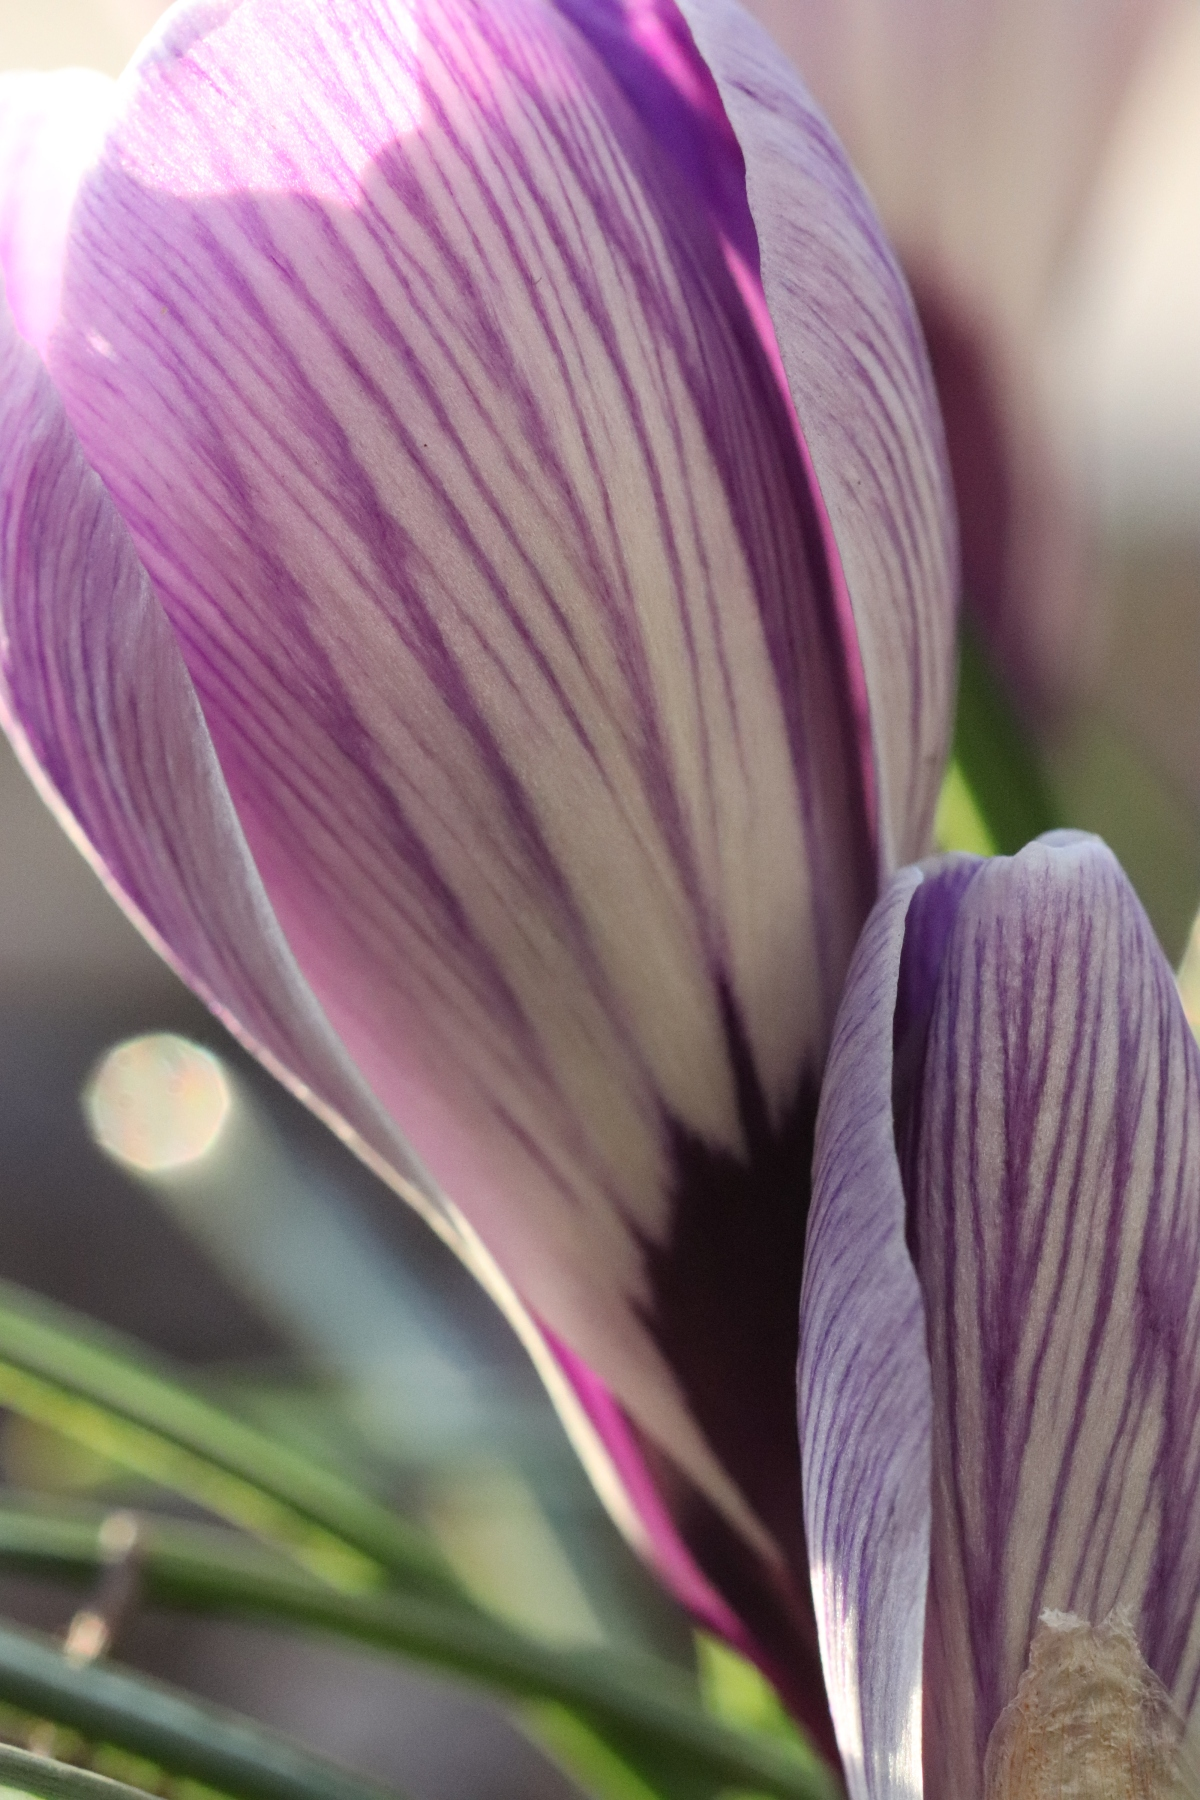 Striped Crocus